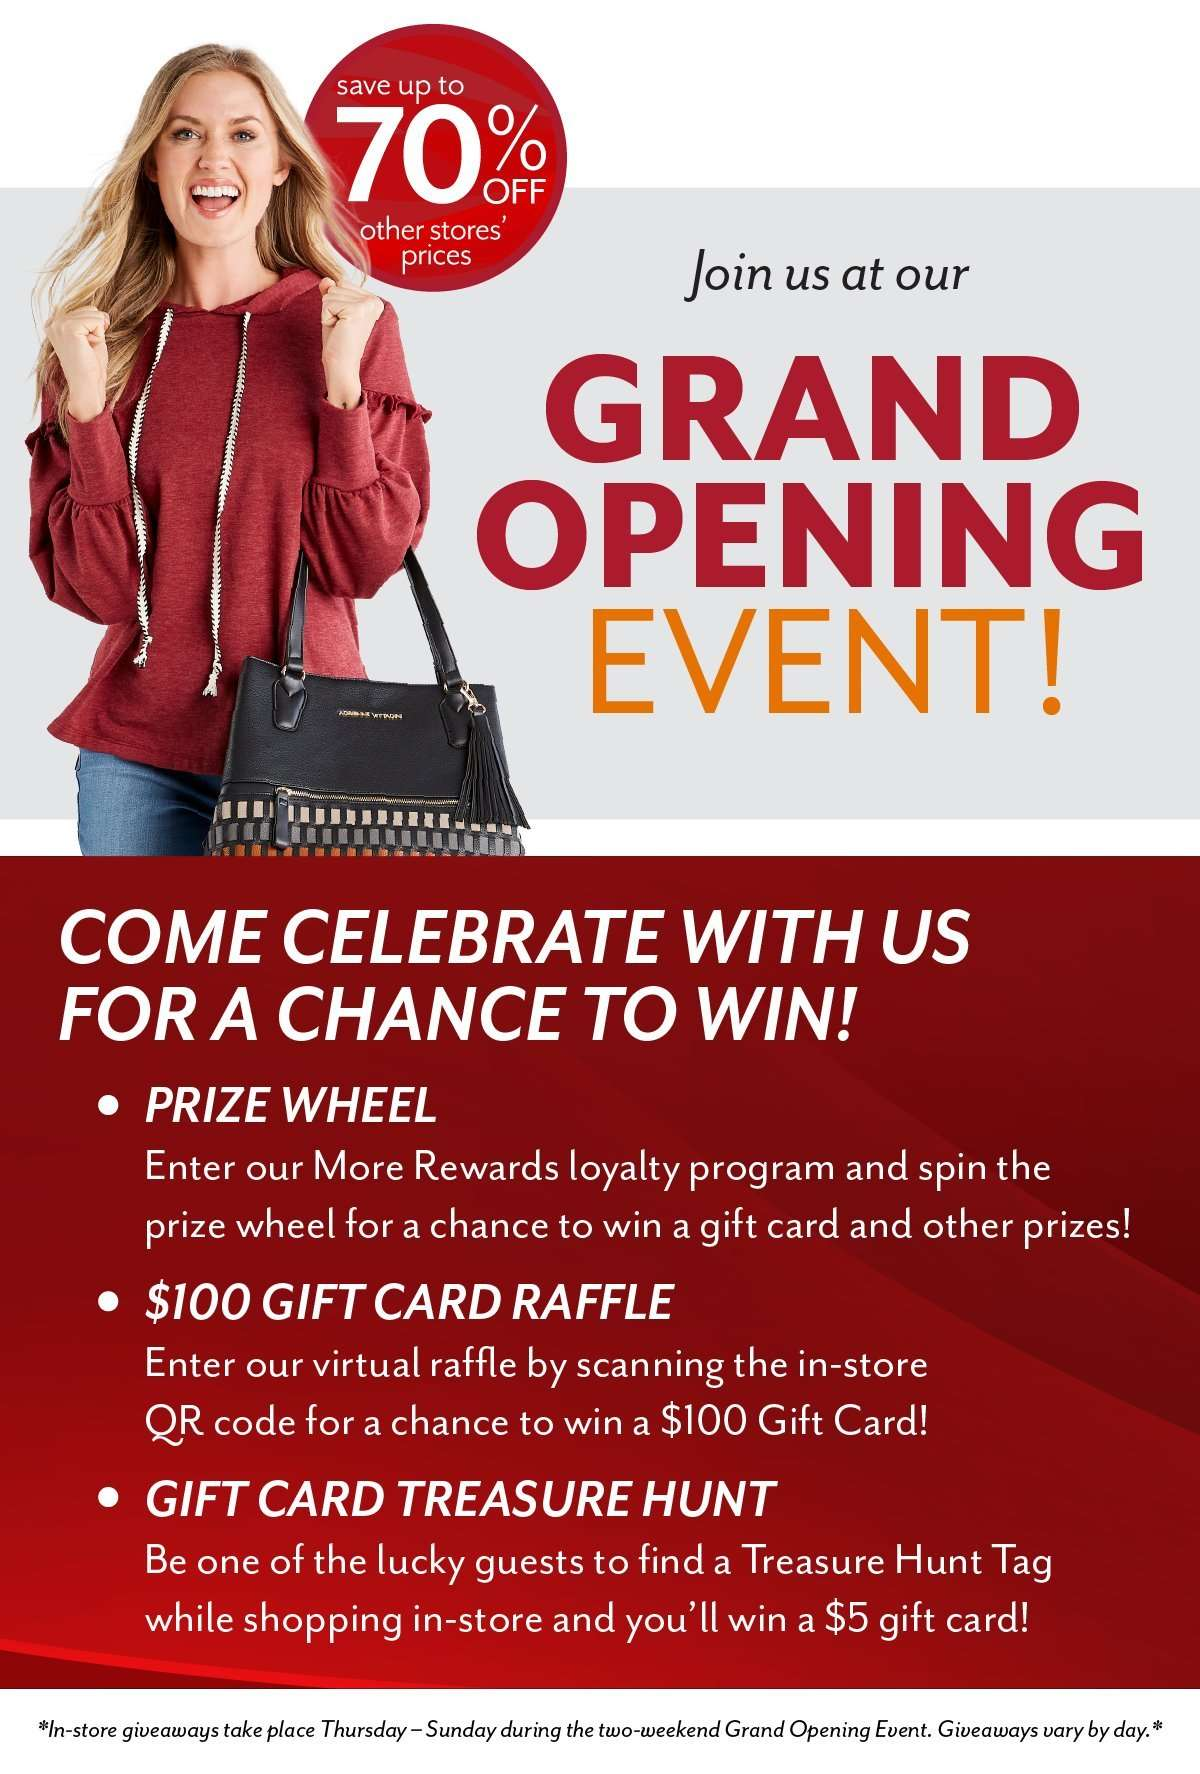 Grand Opening Celebrations at Bealls Outlet!